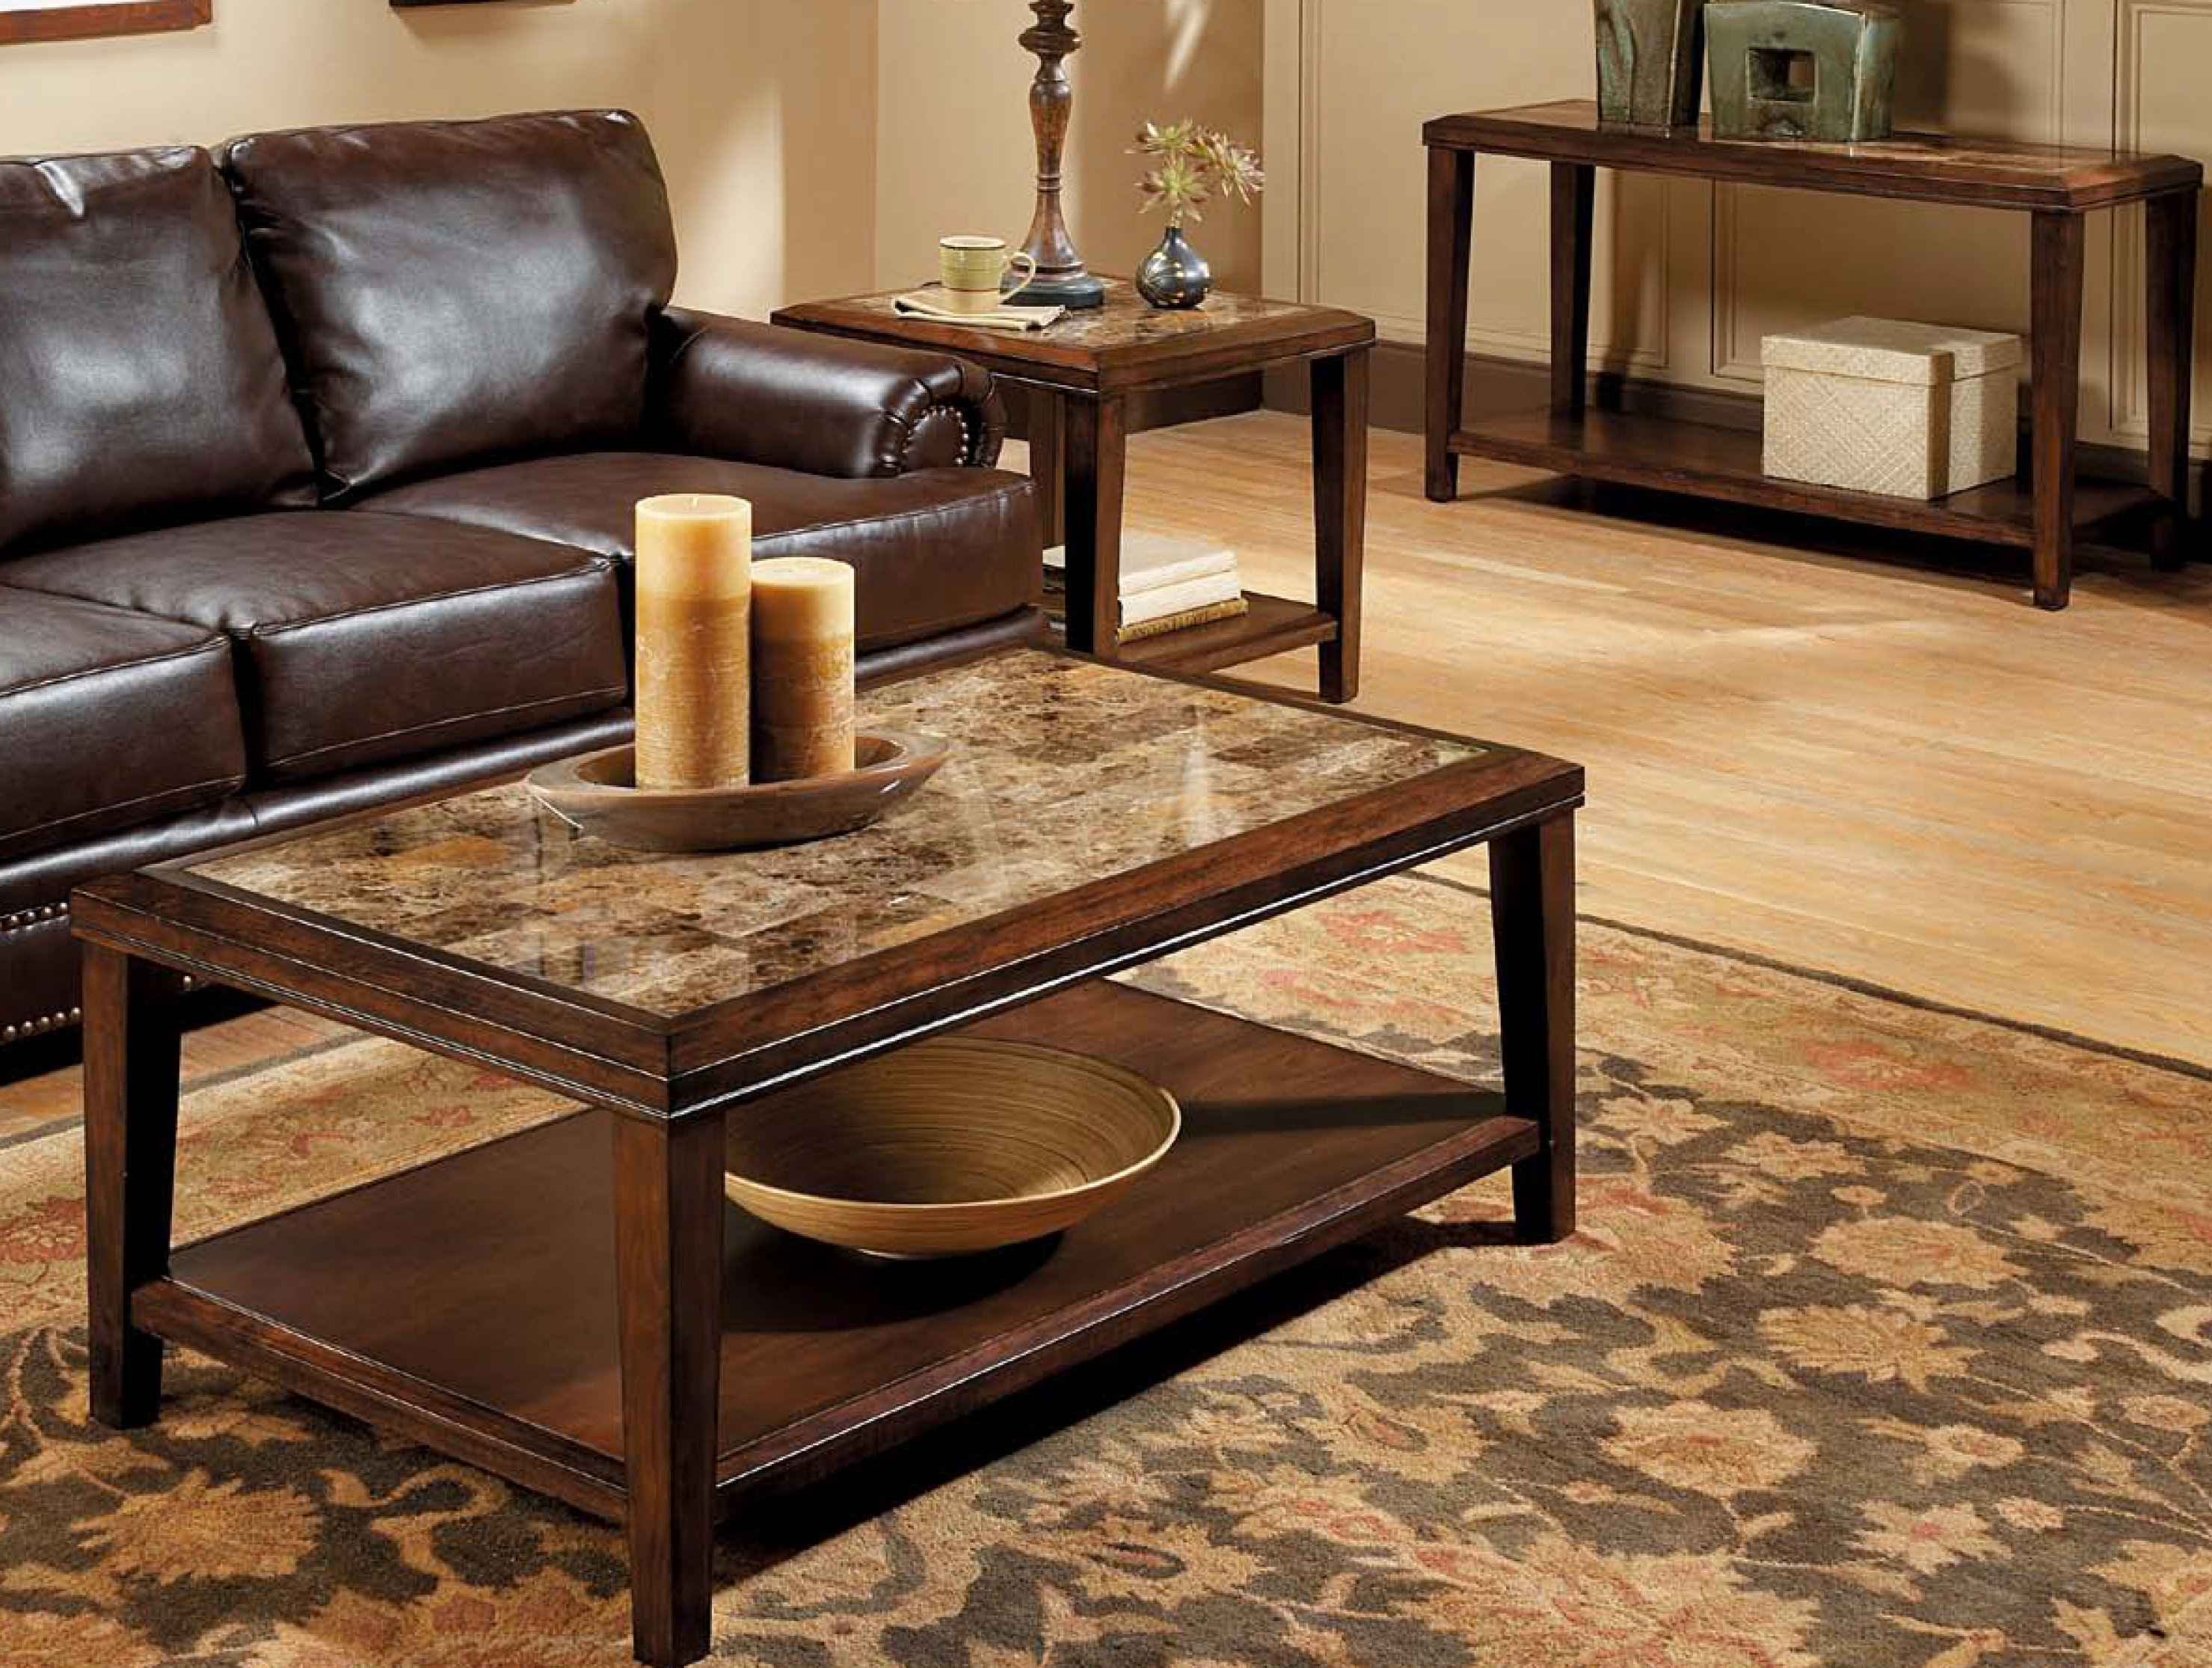 East Bay Furniture Outlet Antioch CA